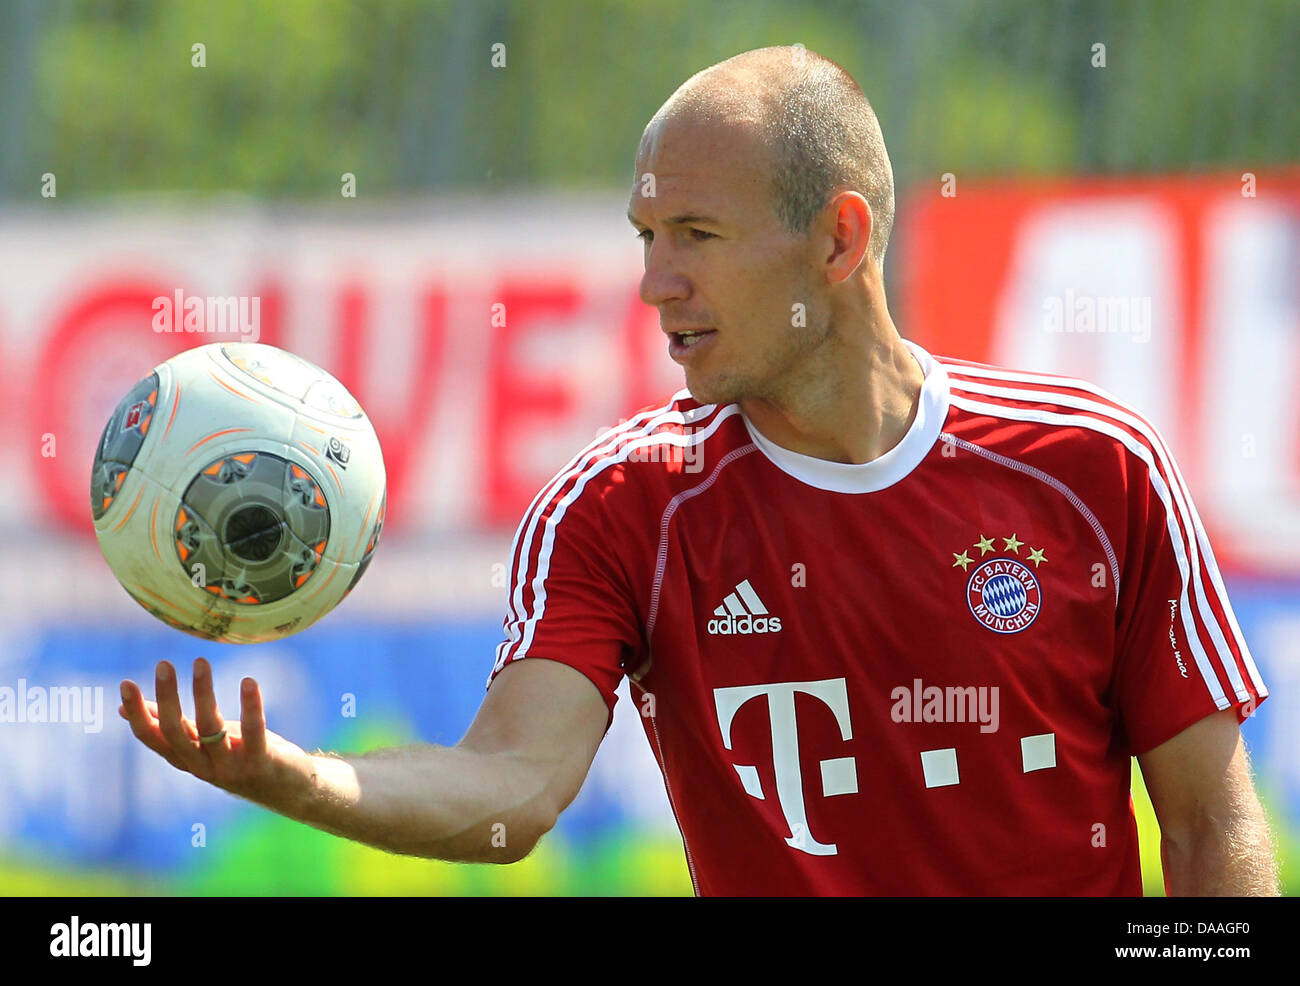 Munichs arjen robben takes part in a training session in arco stock munichs arjen robben takes part in a training session in arco italy 09 july 2013 german bundesliga soccer club bayern munich is holding a training camp voltagebd Choice Image